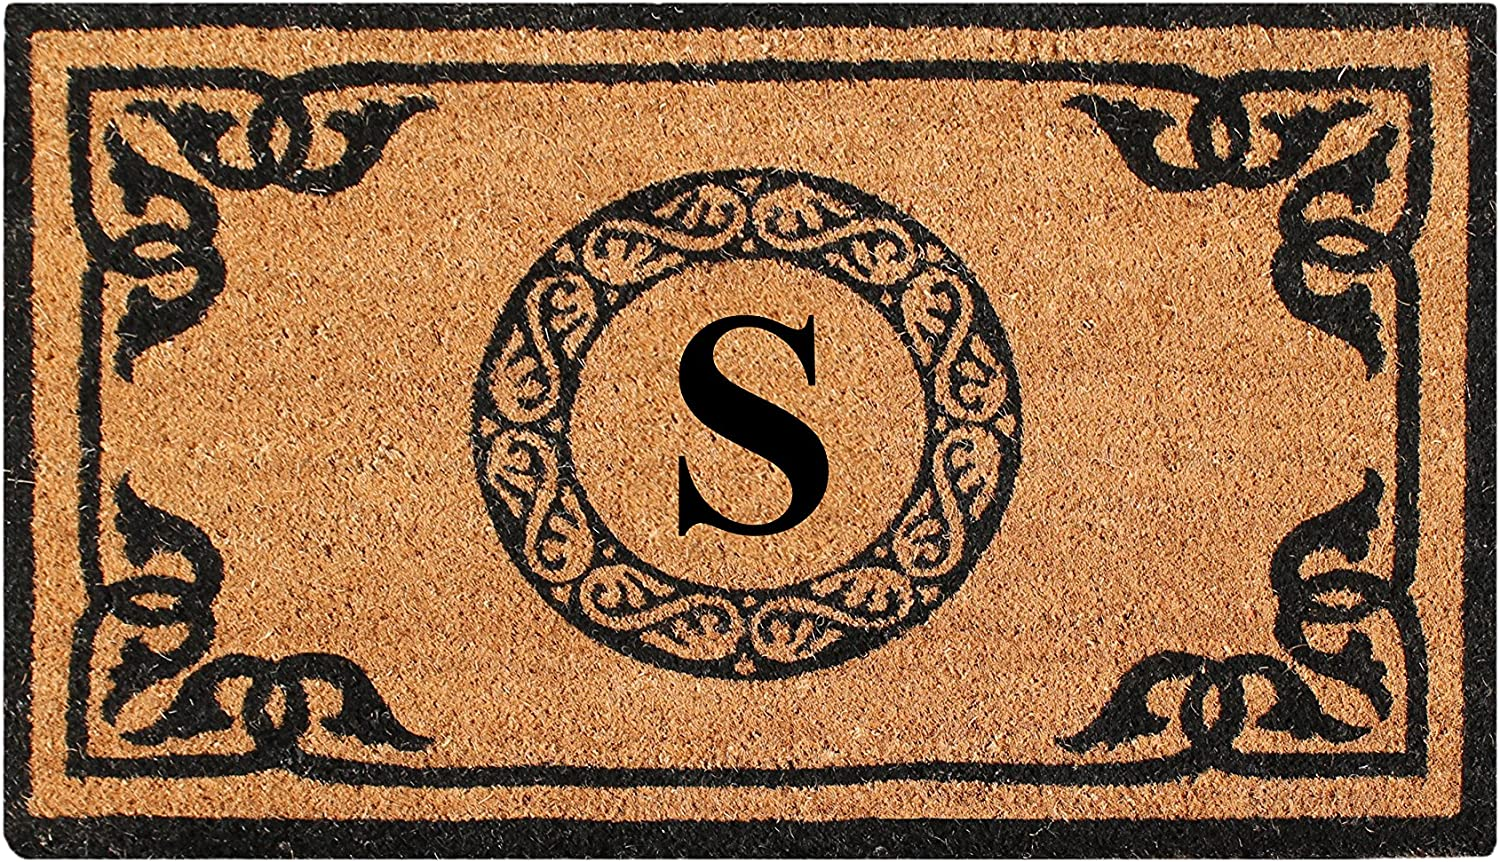 A1 HOME COLLECTIONS PT3006S First Impression Hand Crafted by Artisans Geneva Monogrammed Entry Doormat, 24 X39